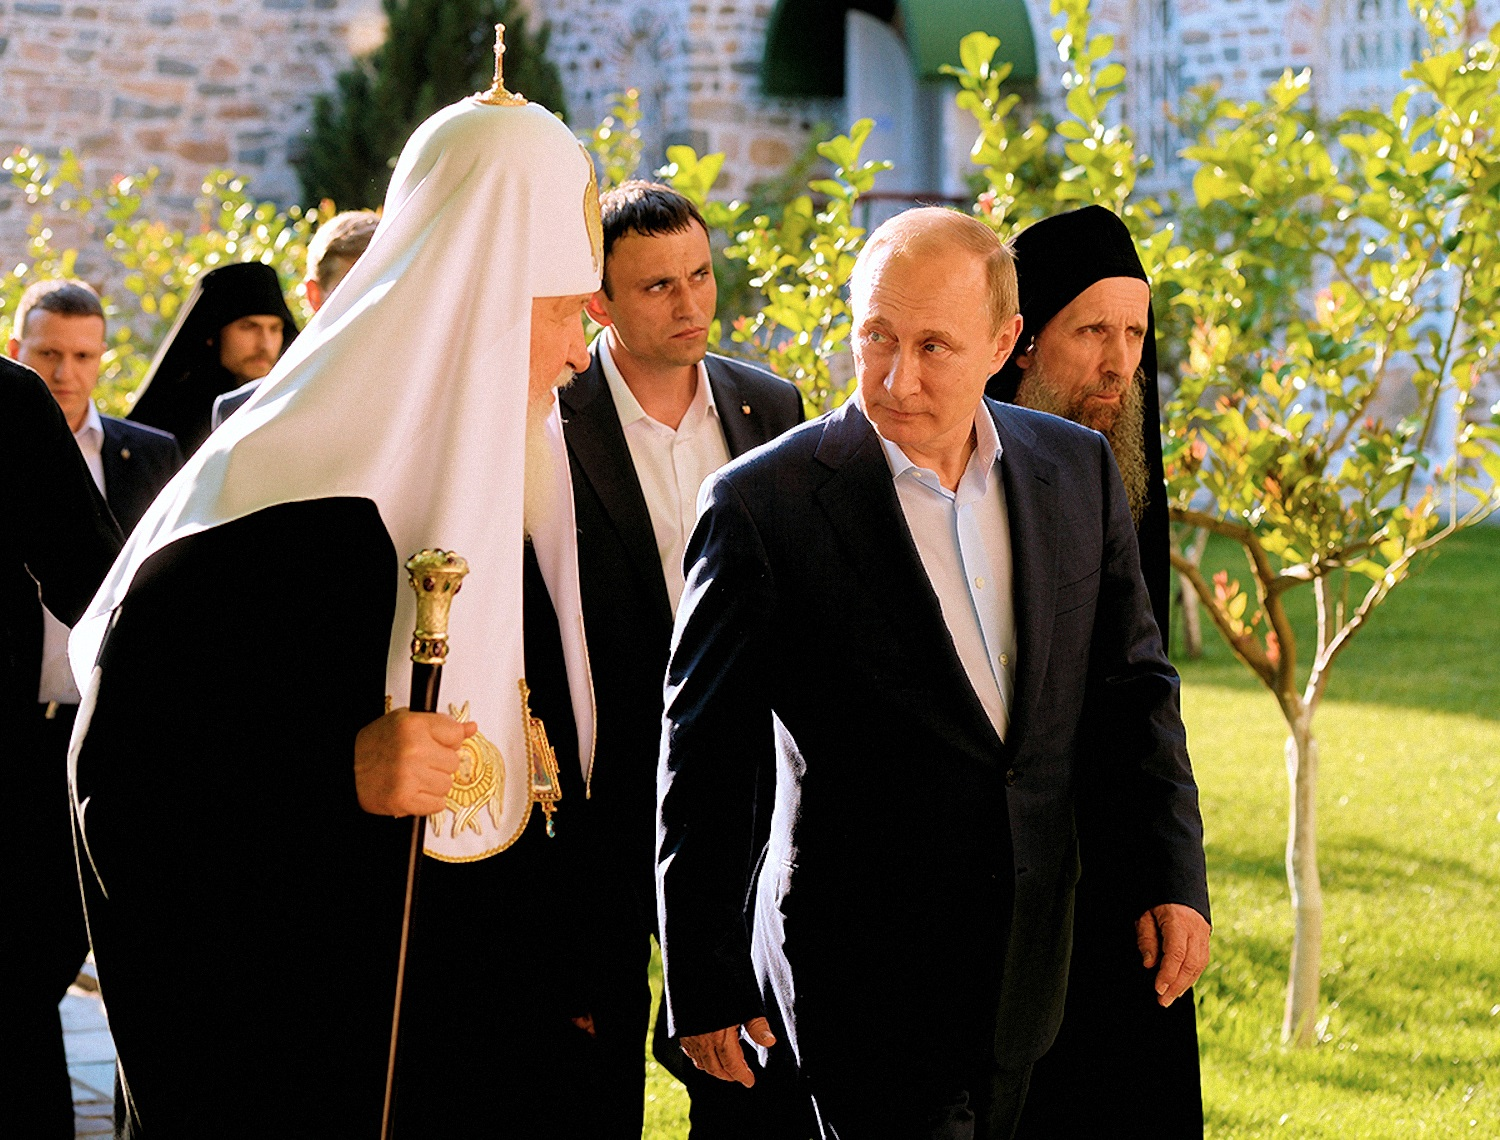 00 putin and kirill on athos 03 290516